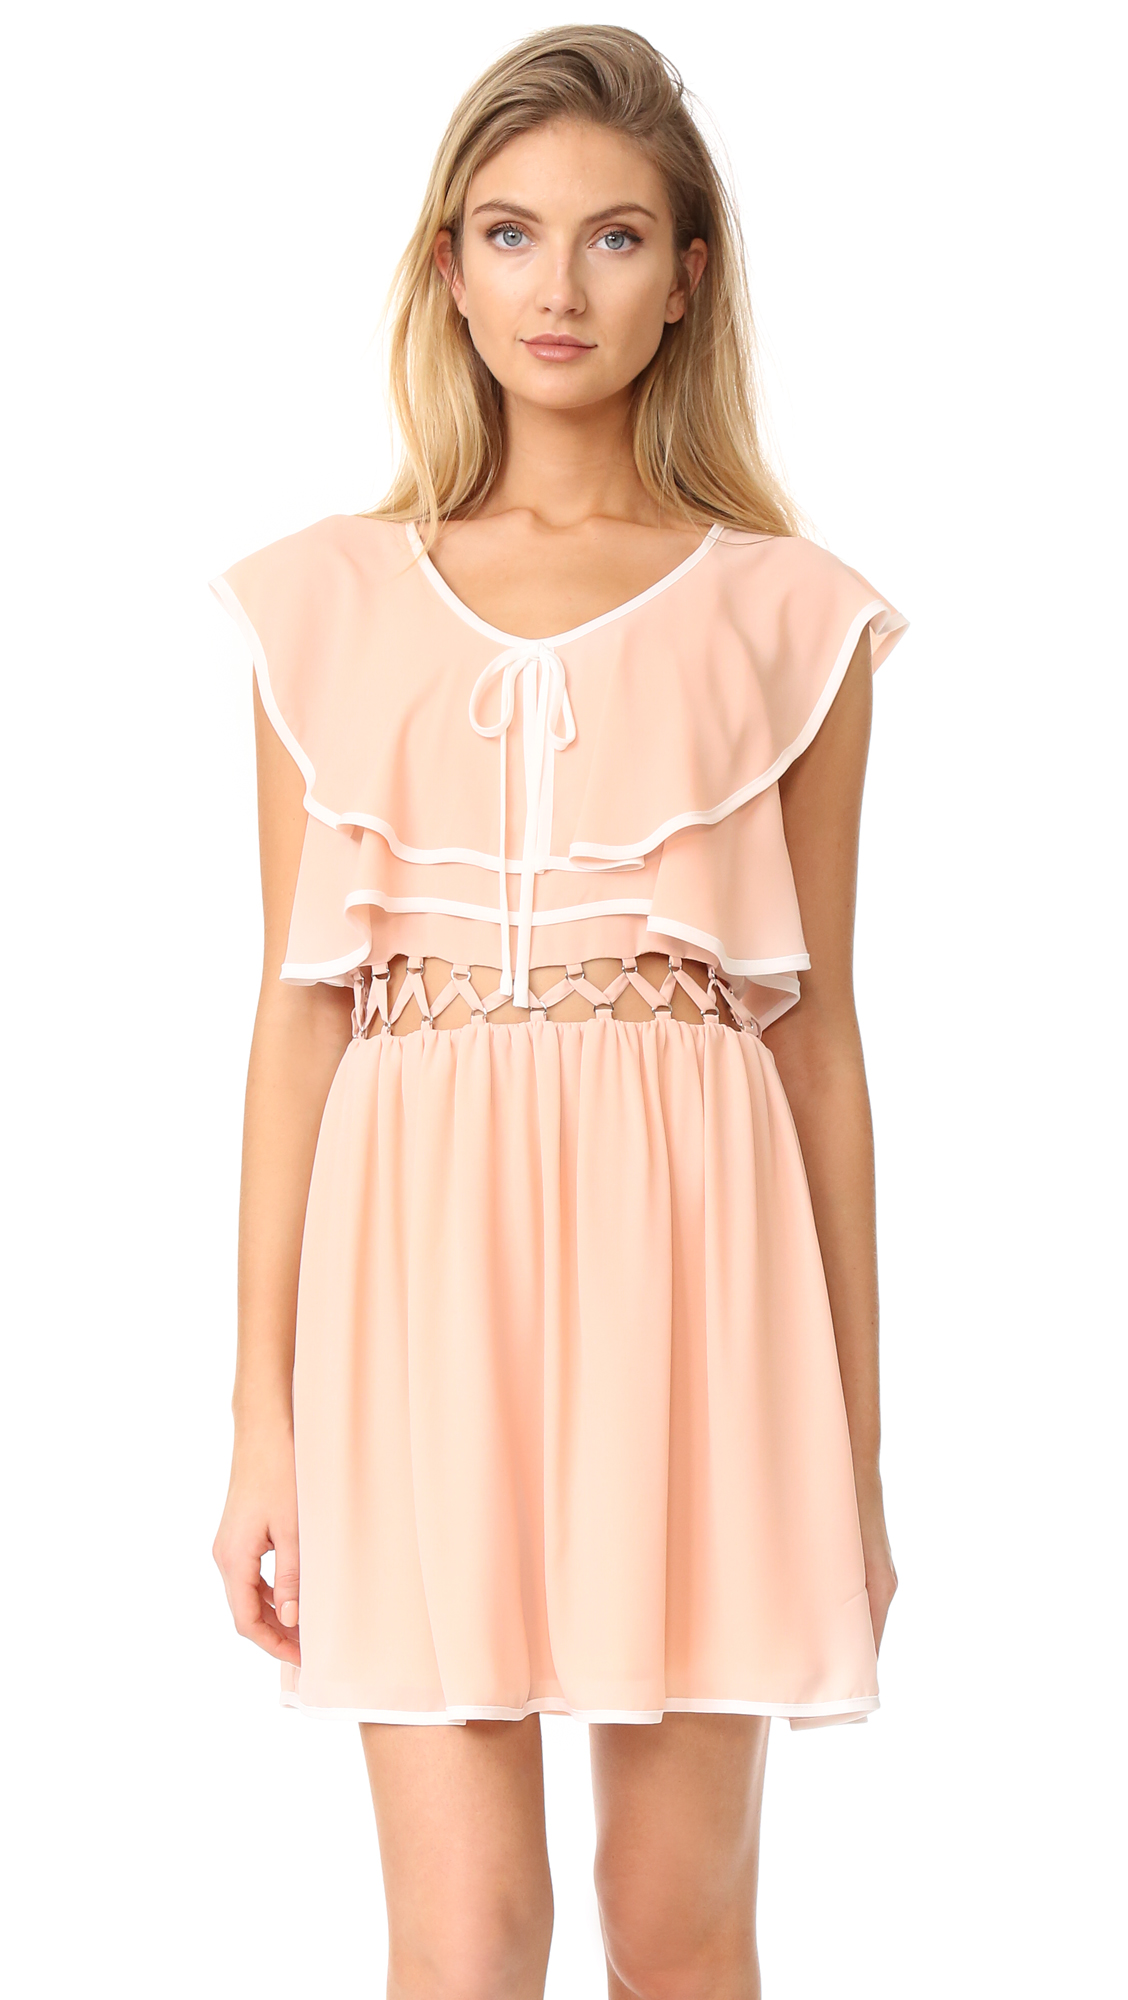 endless rose Open Waist Flared Dress - Tea Rose/White Combo